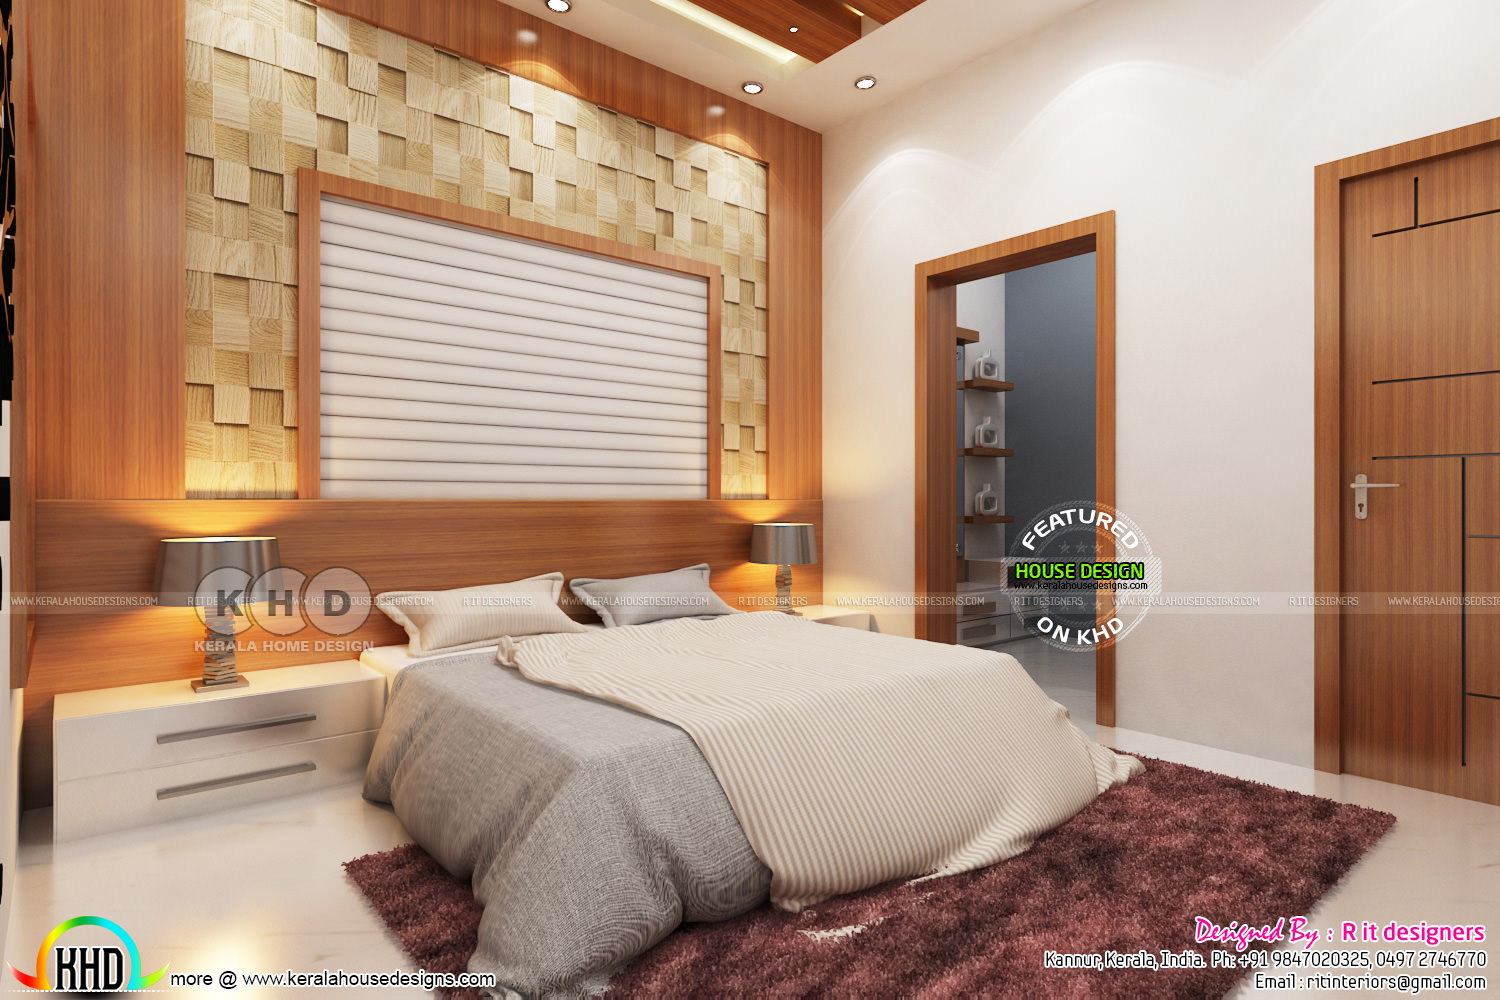 Grand creative master bedroom interior kerala home Creative interior design